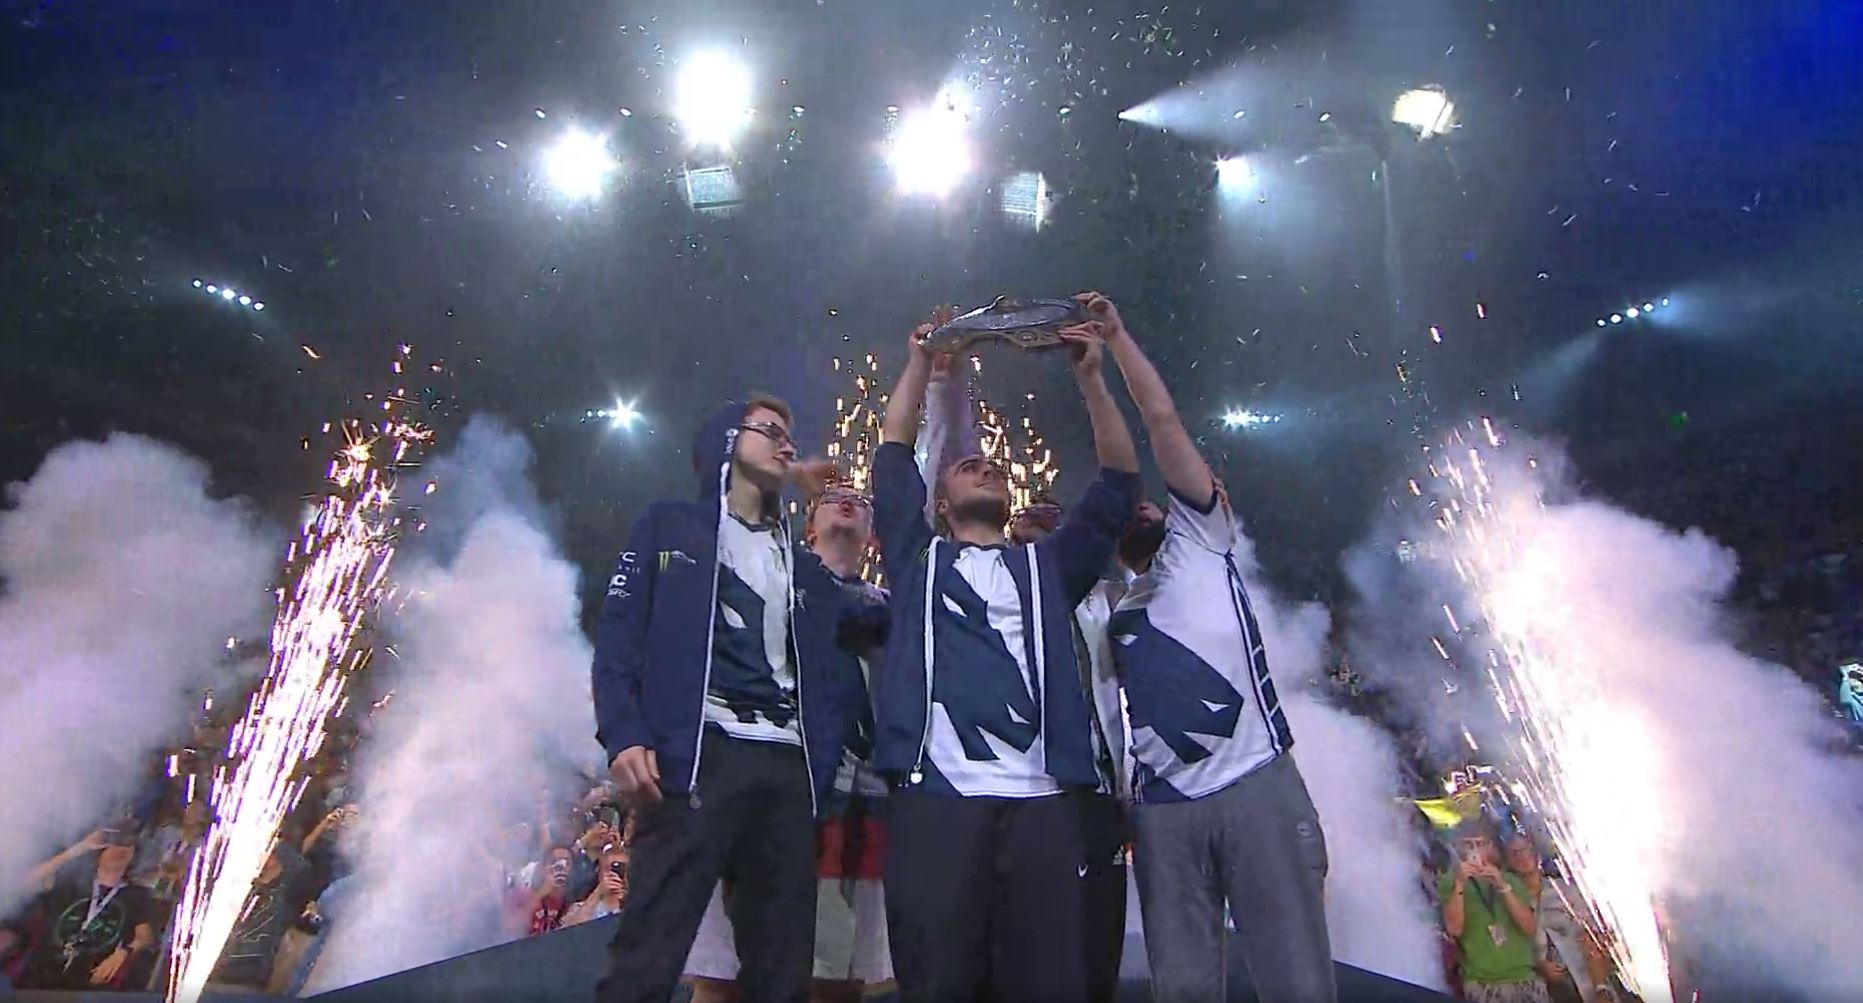 Photo of Team Liquid Has Won The International 7 Title With a Clean Sweep of 3-0 Against Newbee